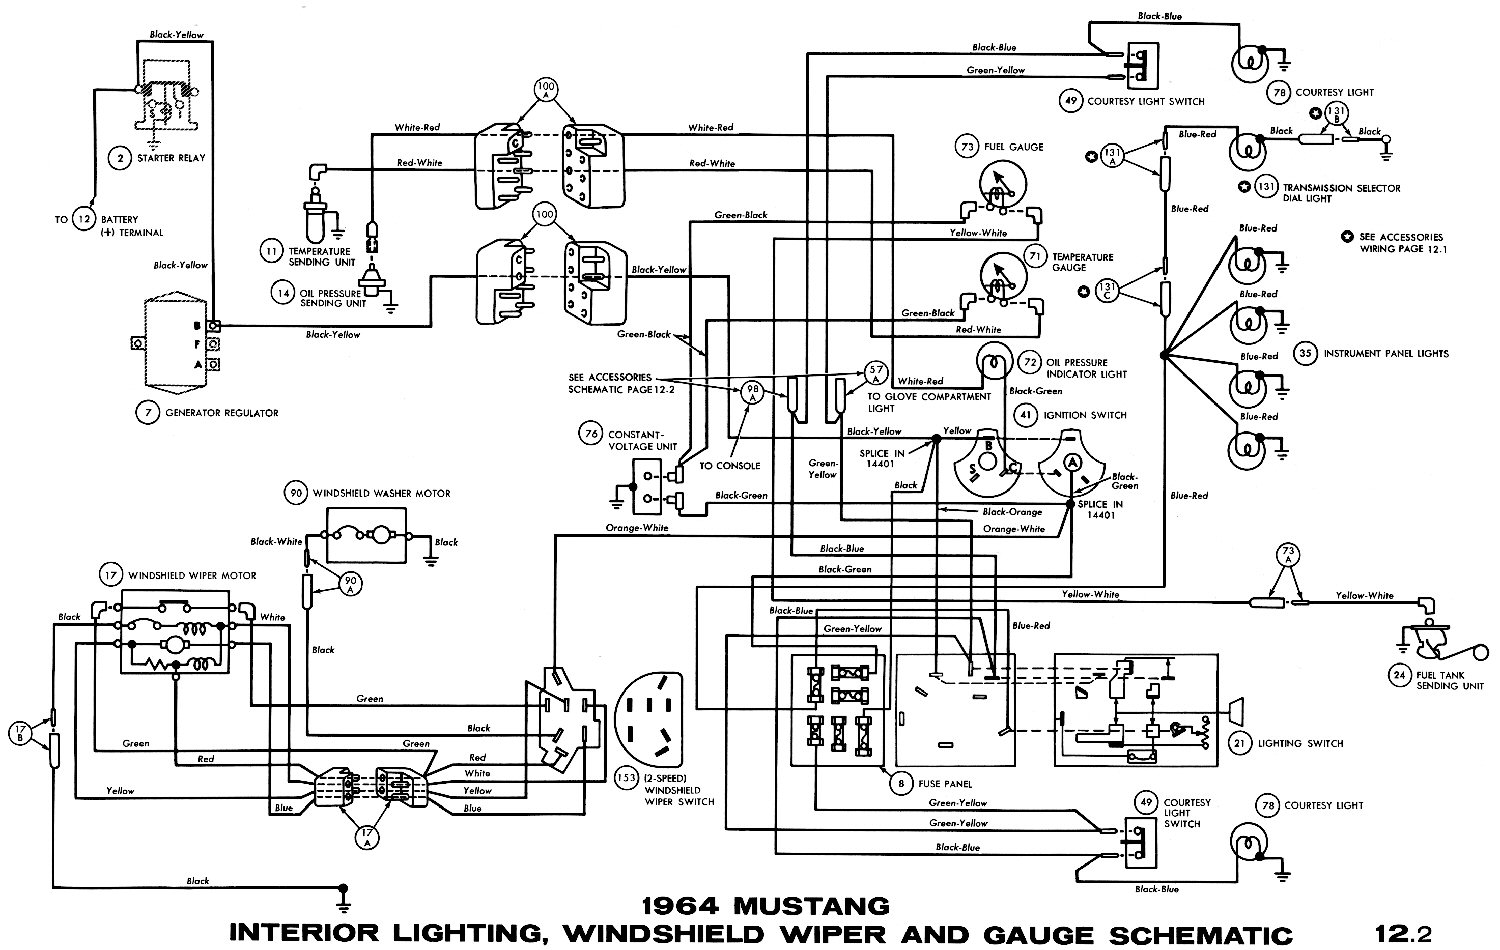 67 ford wiring diagrams 1966 mustang diagram wiring diagram third rh 10 13 11 jacobwinterstein com 1966 Mustang Under Dash Wiring Diagram 1967 Mustang Console Wiring Diagram